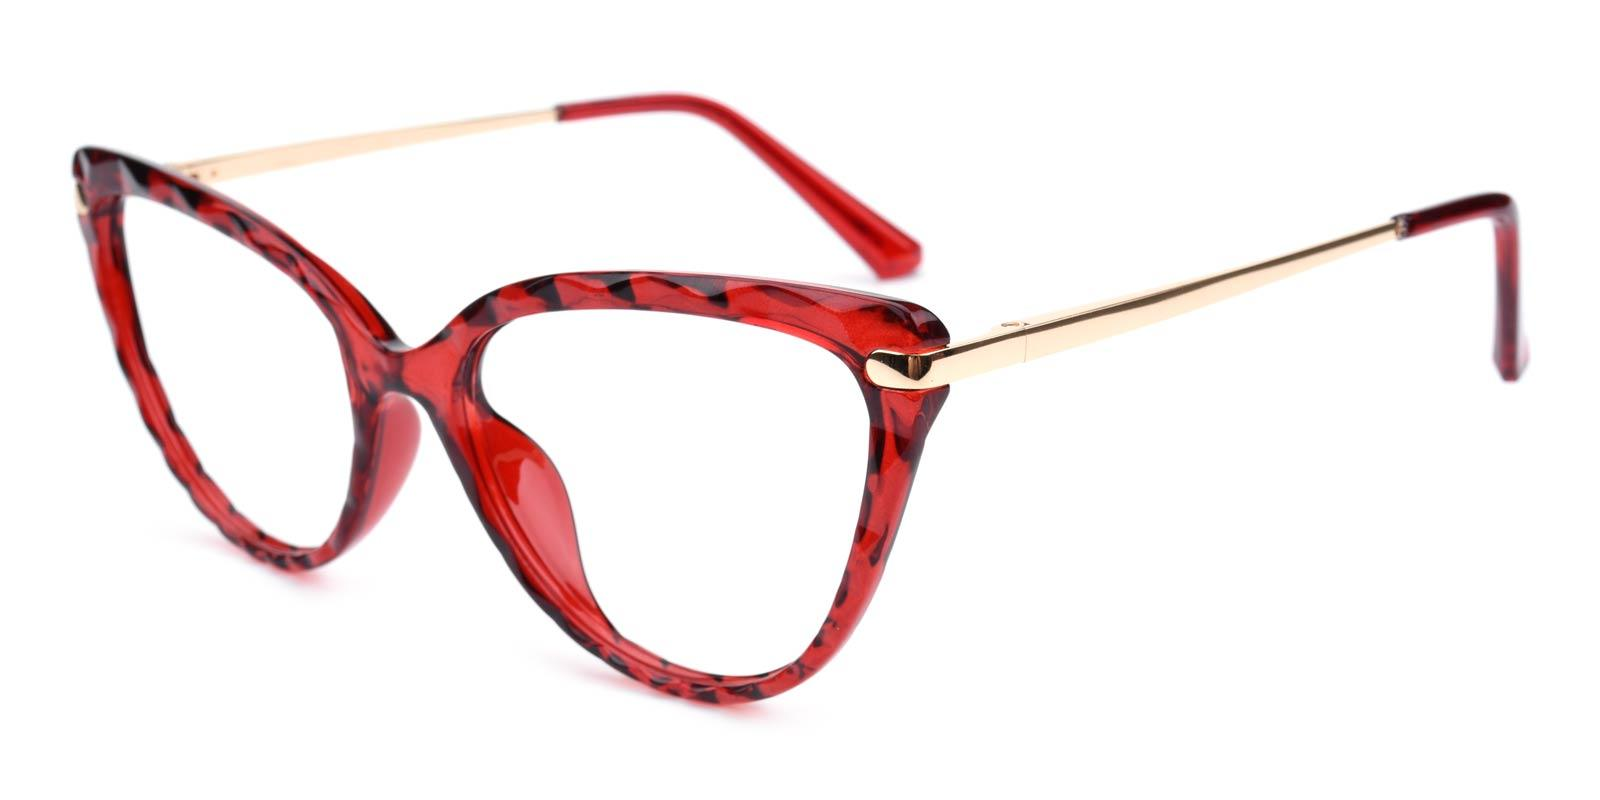 Truda-Red-Cat-Combination-Eyeglasses-additional1